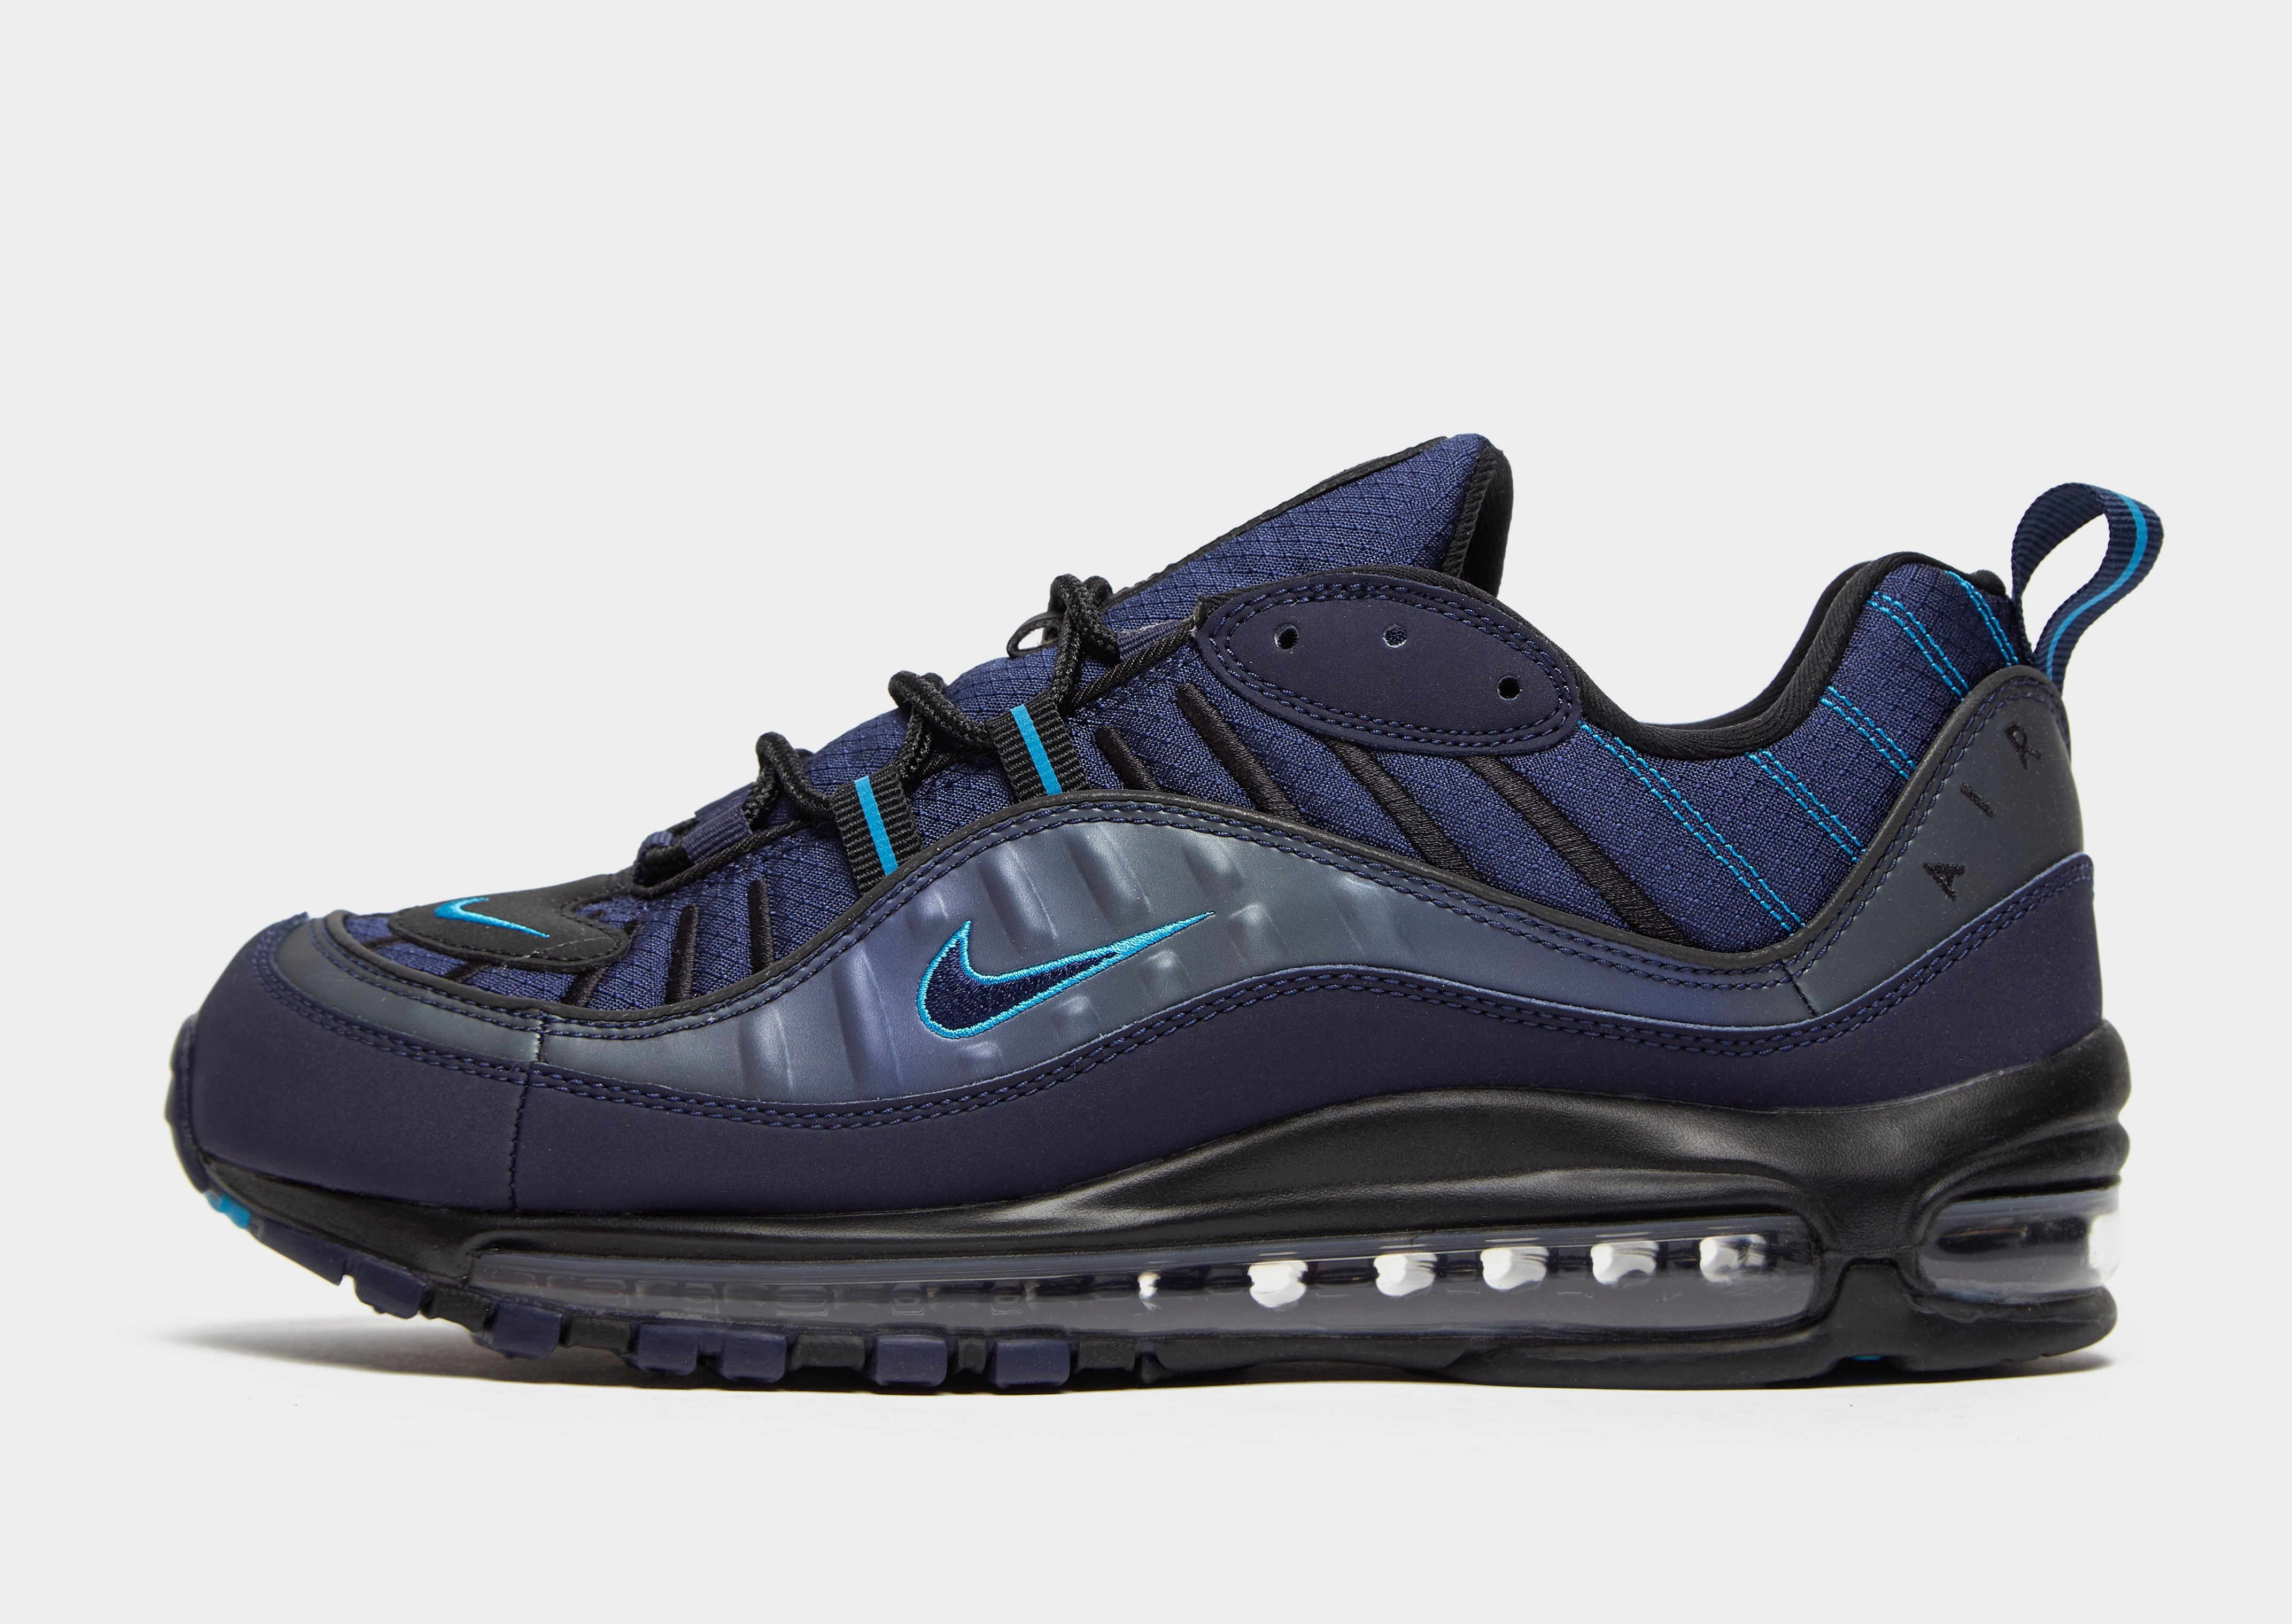 best choice timeless design reliable quality Buy White Nike Air Max 98 SE | JD Sports